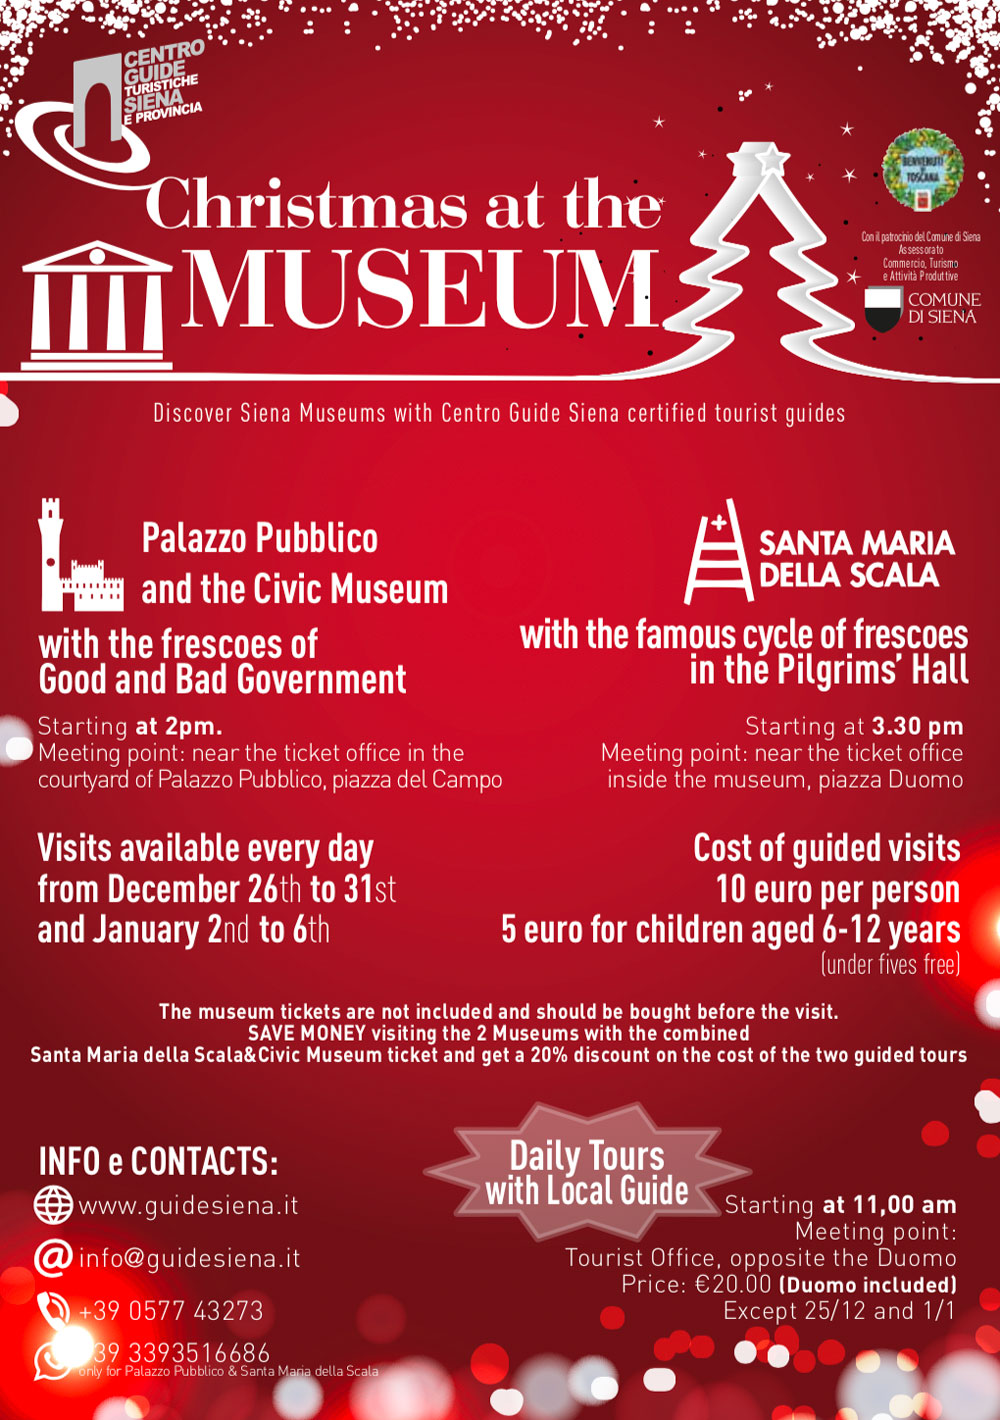 christmas-at-the-museum-siena